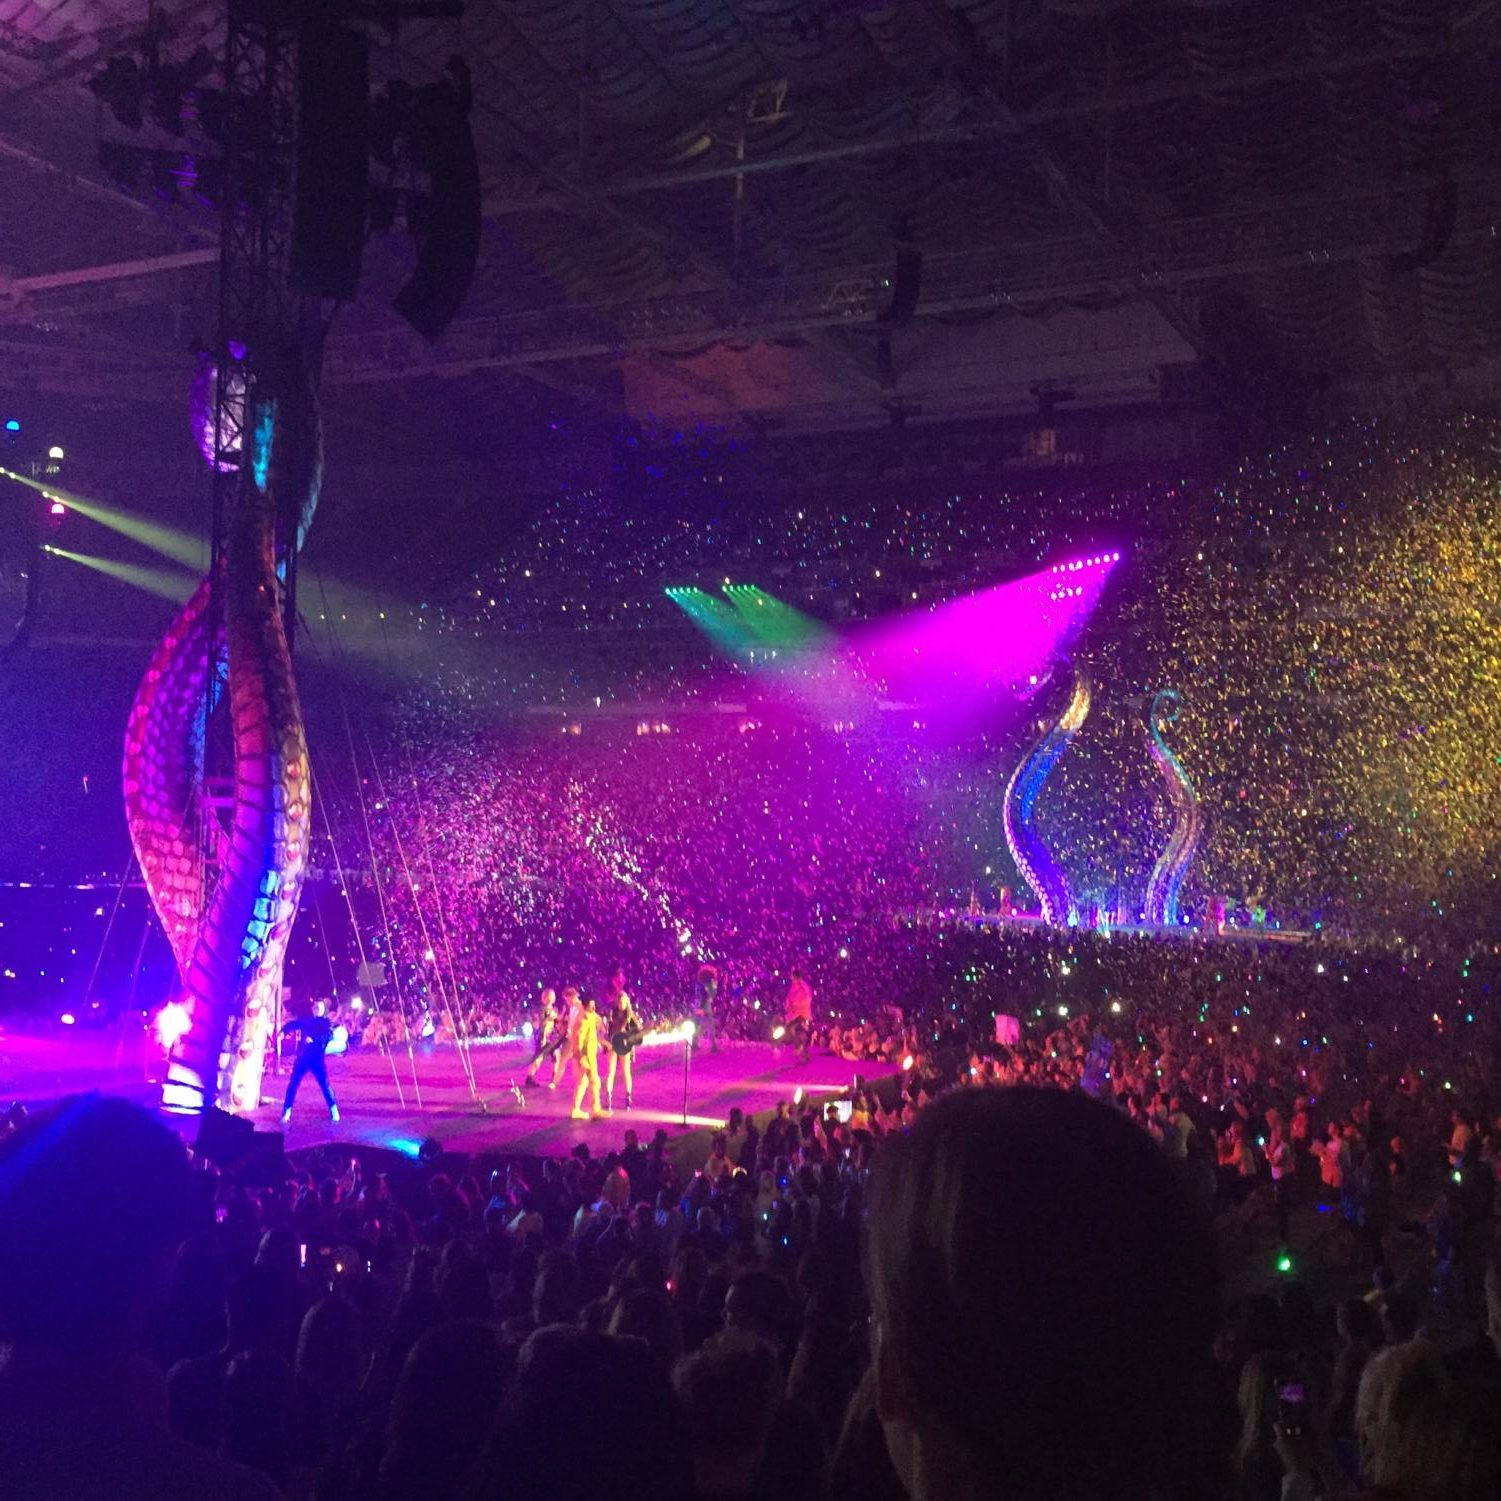 Lizzie Kayser's view of the stage at the Taylor Swift concert.